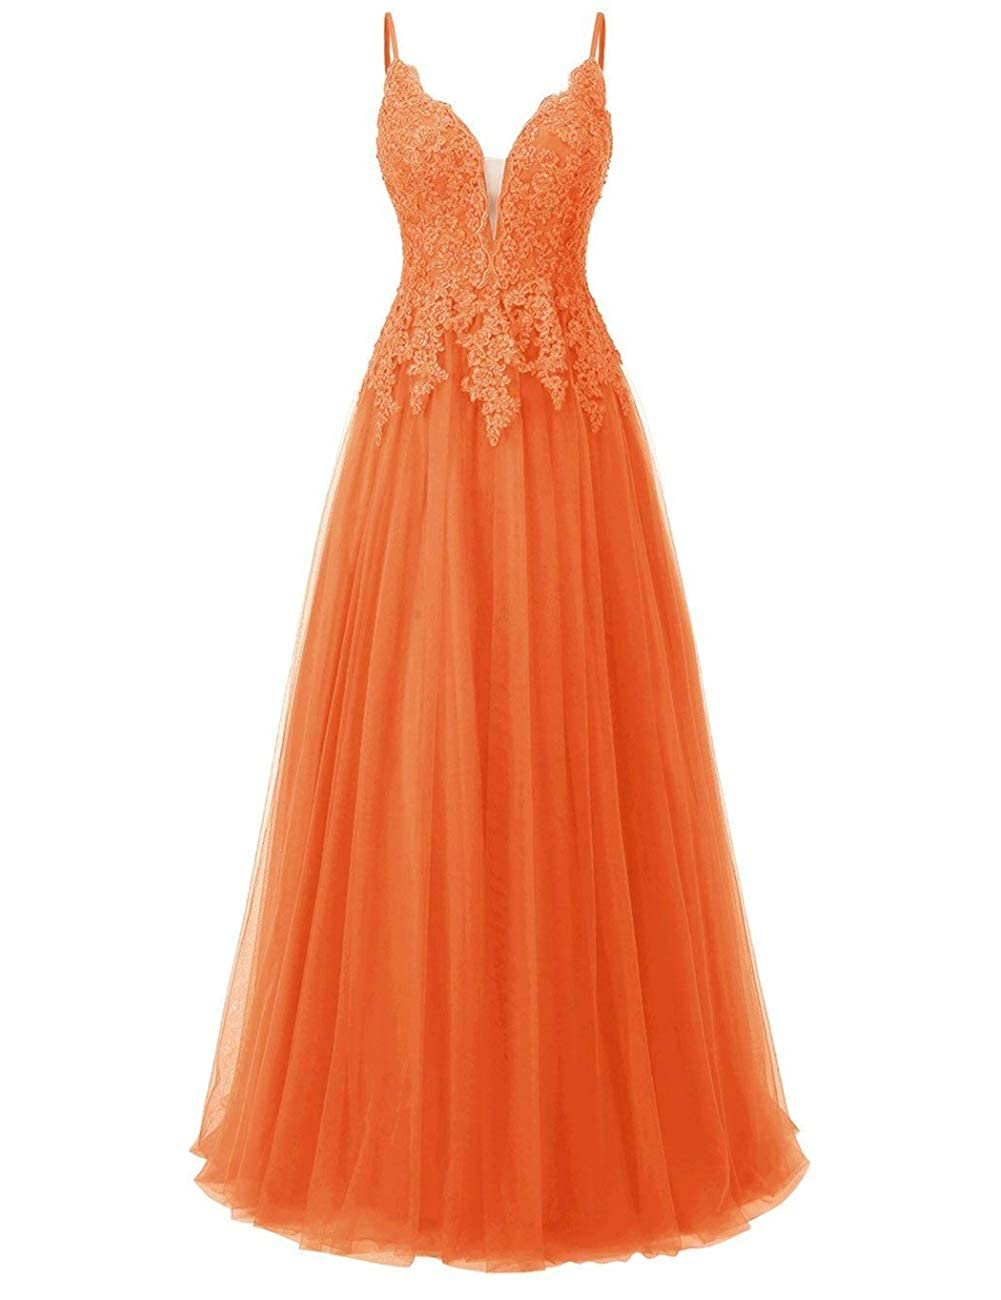 orange Elegant Long Bridesmaid Dresses with Lace Applique Beads Spaghetti Straps Tulle Prom Gowns